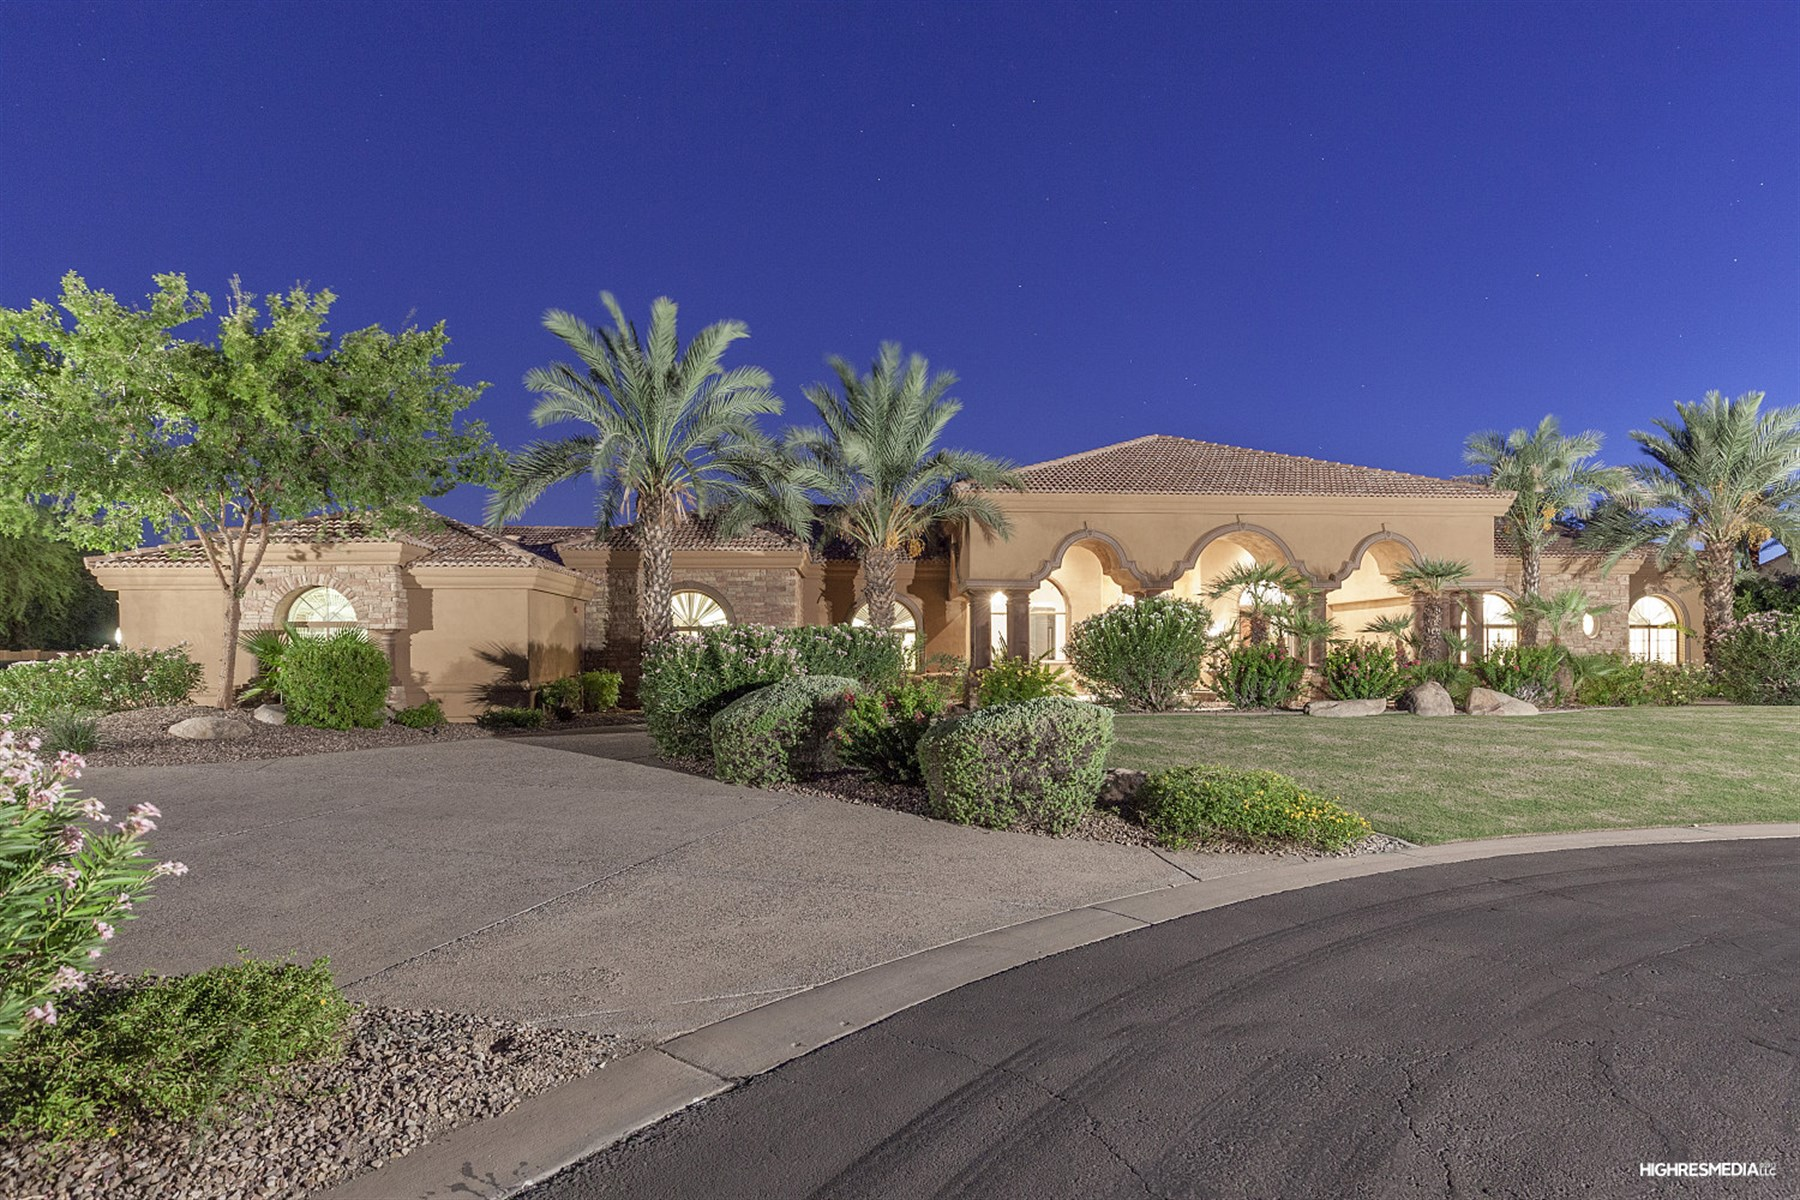 sales property at Gated enclave of Portales Del Sol in the Cactus Corridor